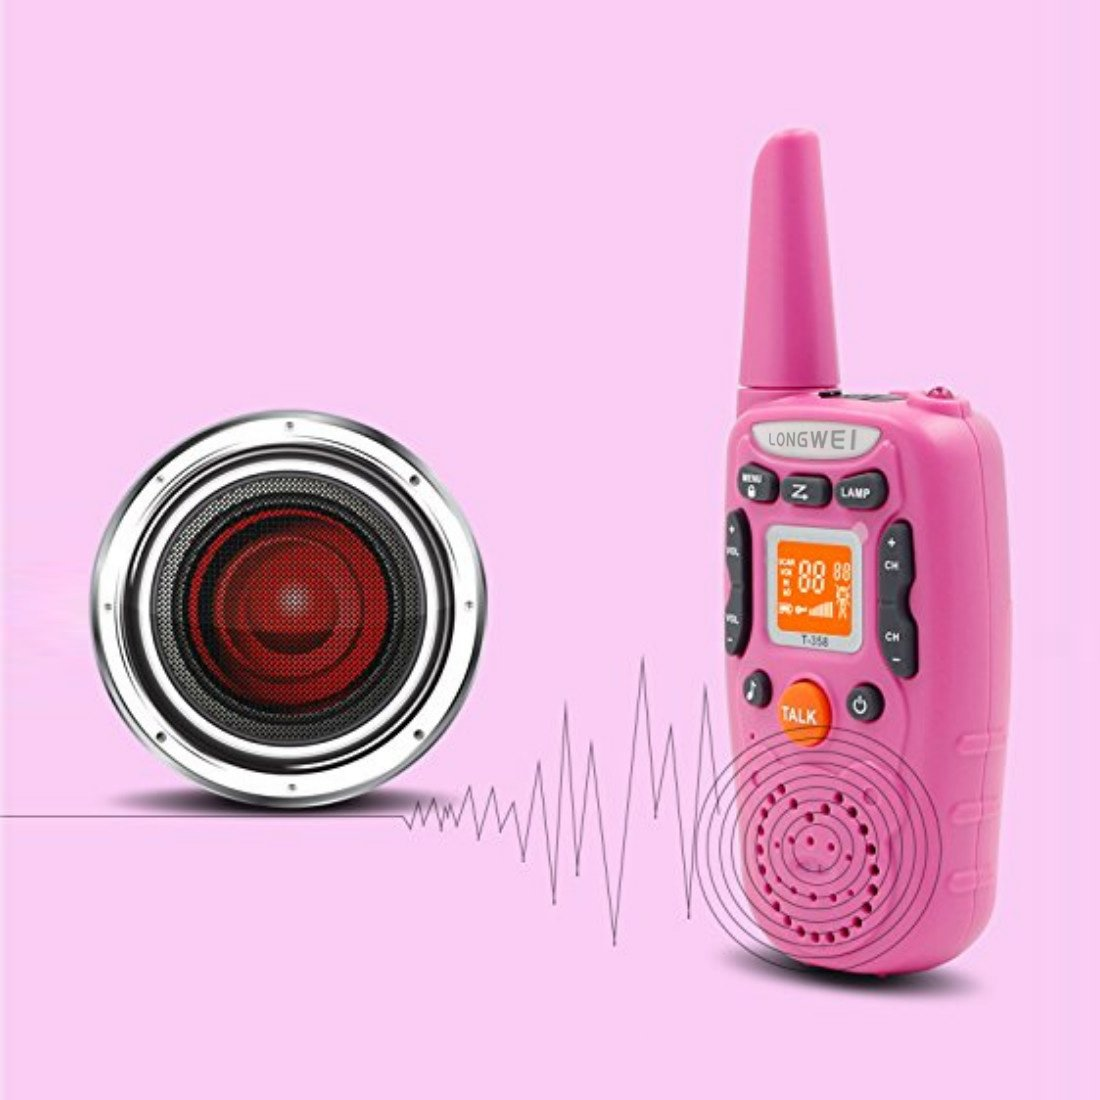 Kids Walkie Talkie Set 0.5W FRS/GMRS 22 Channel Two Way Radio Up to 3 Km Range for Children Camping Hiking(2PCS Pink) by longwei (Image #4)